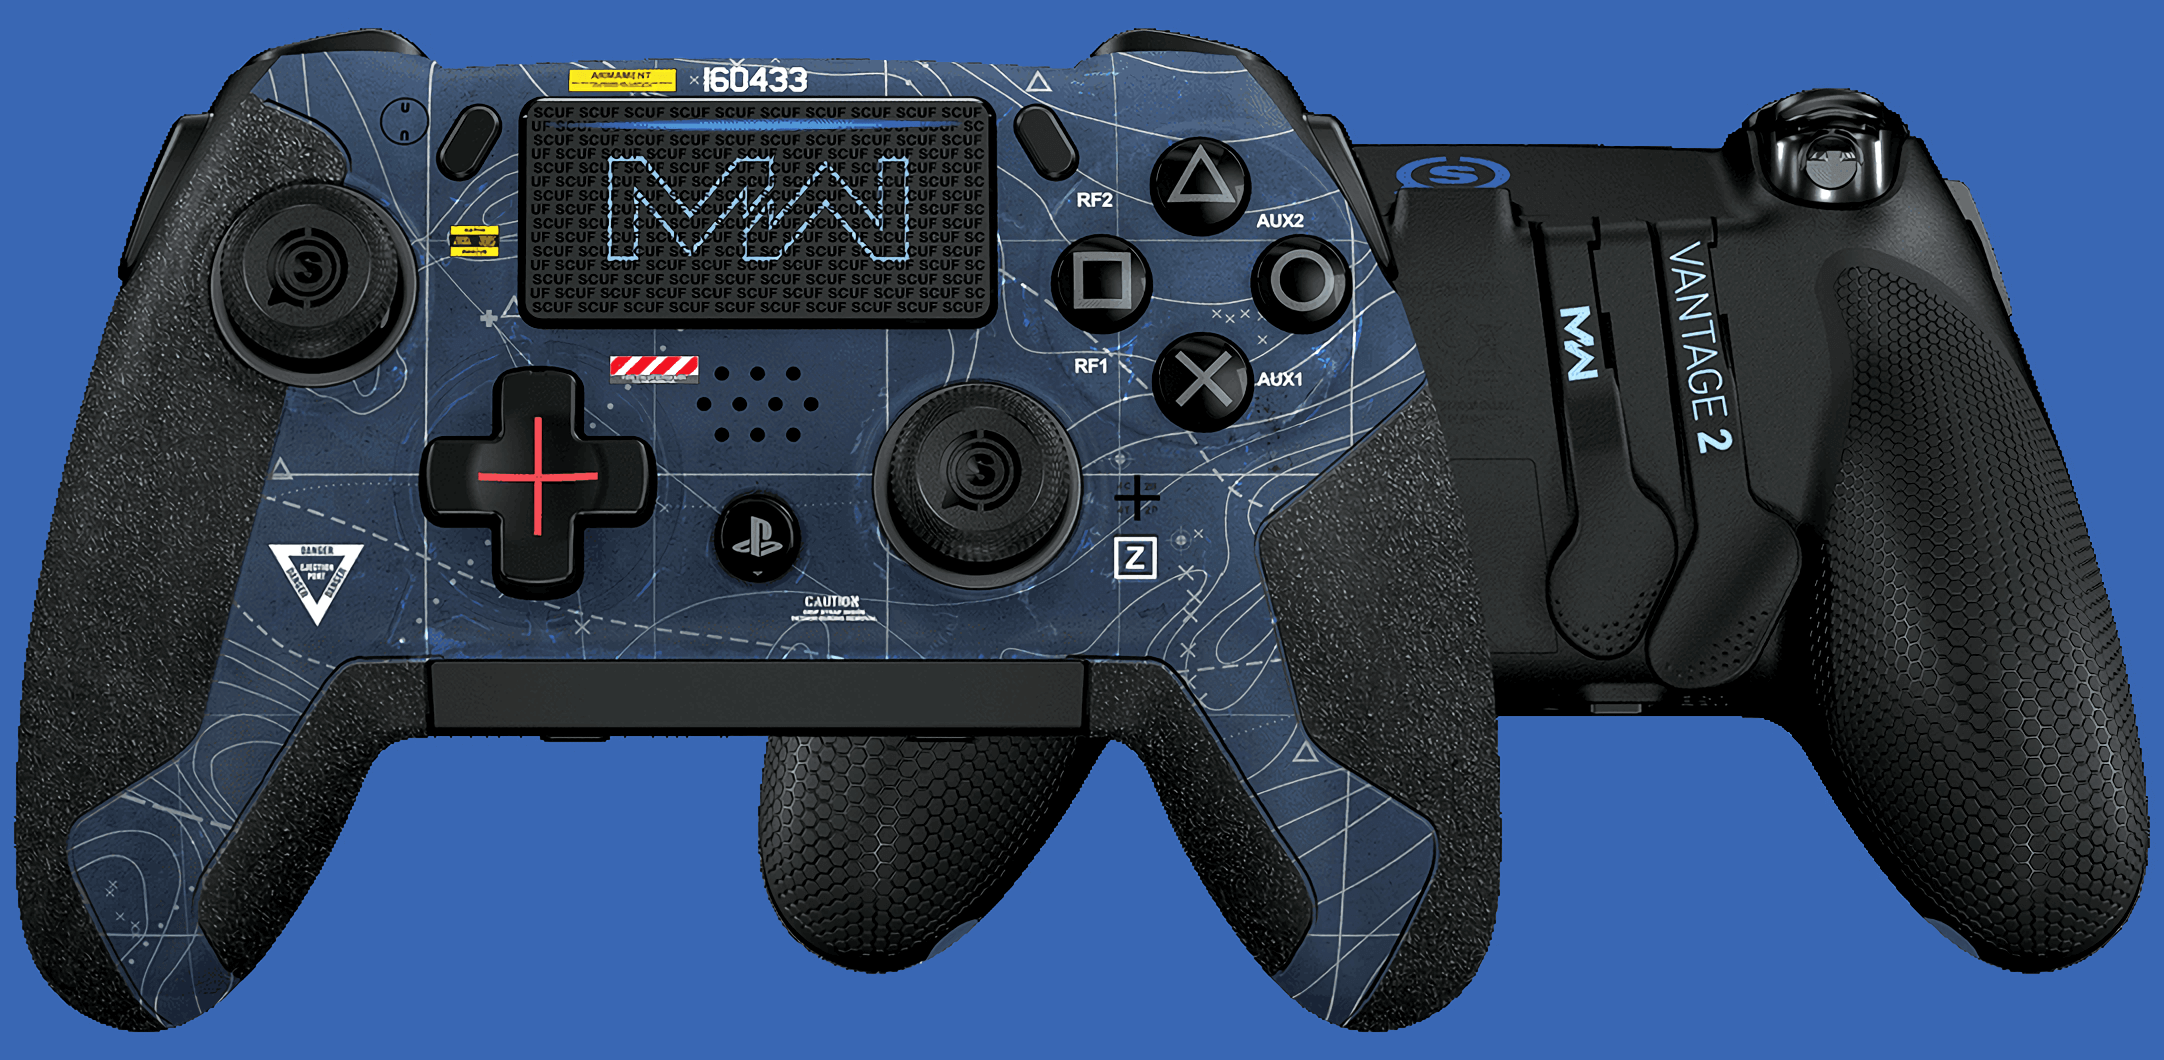 New Vantage PlayStation 4 controller Redesigned by Scuf in October